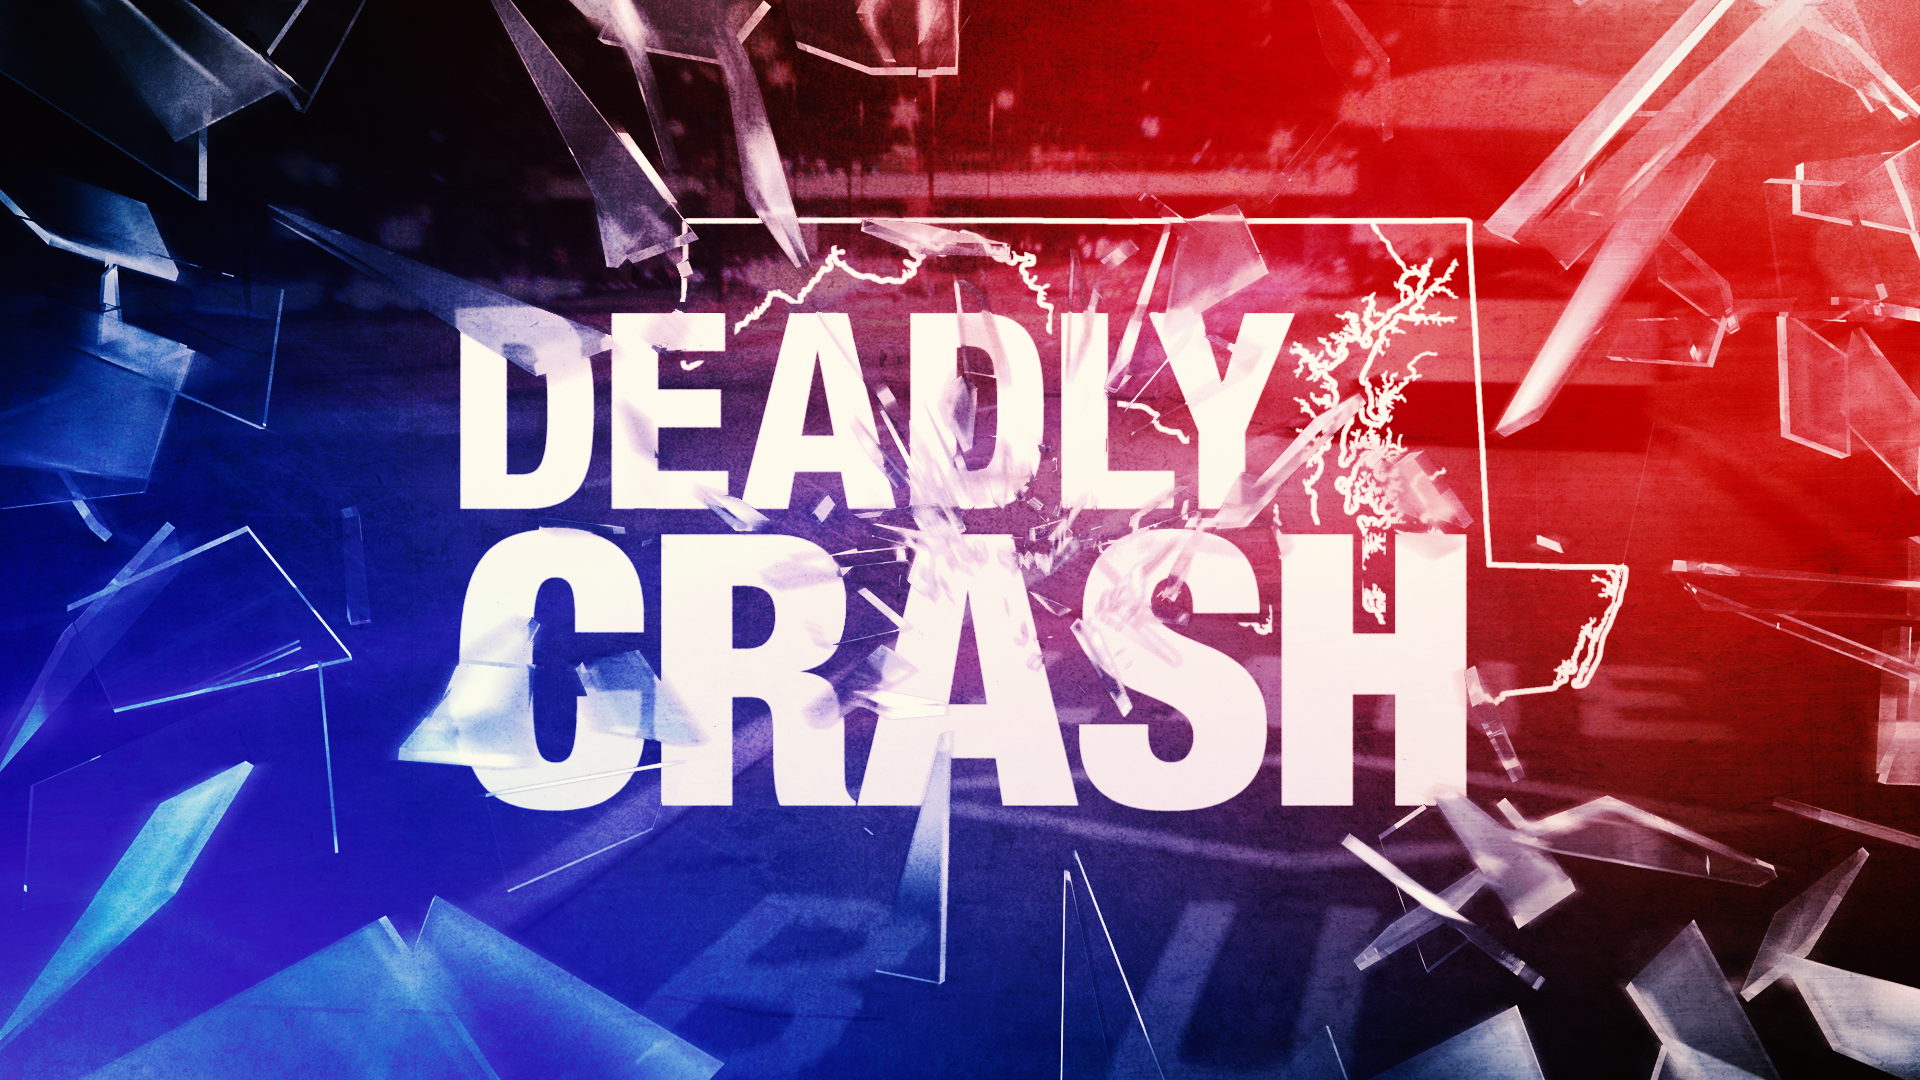 deadly-crash_192347